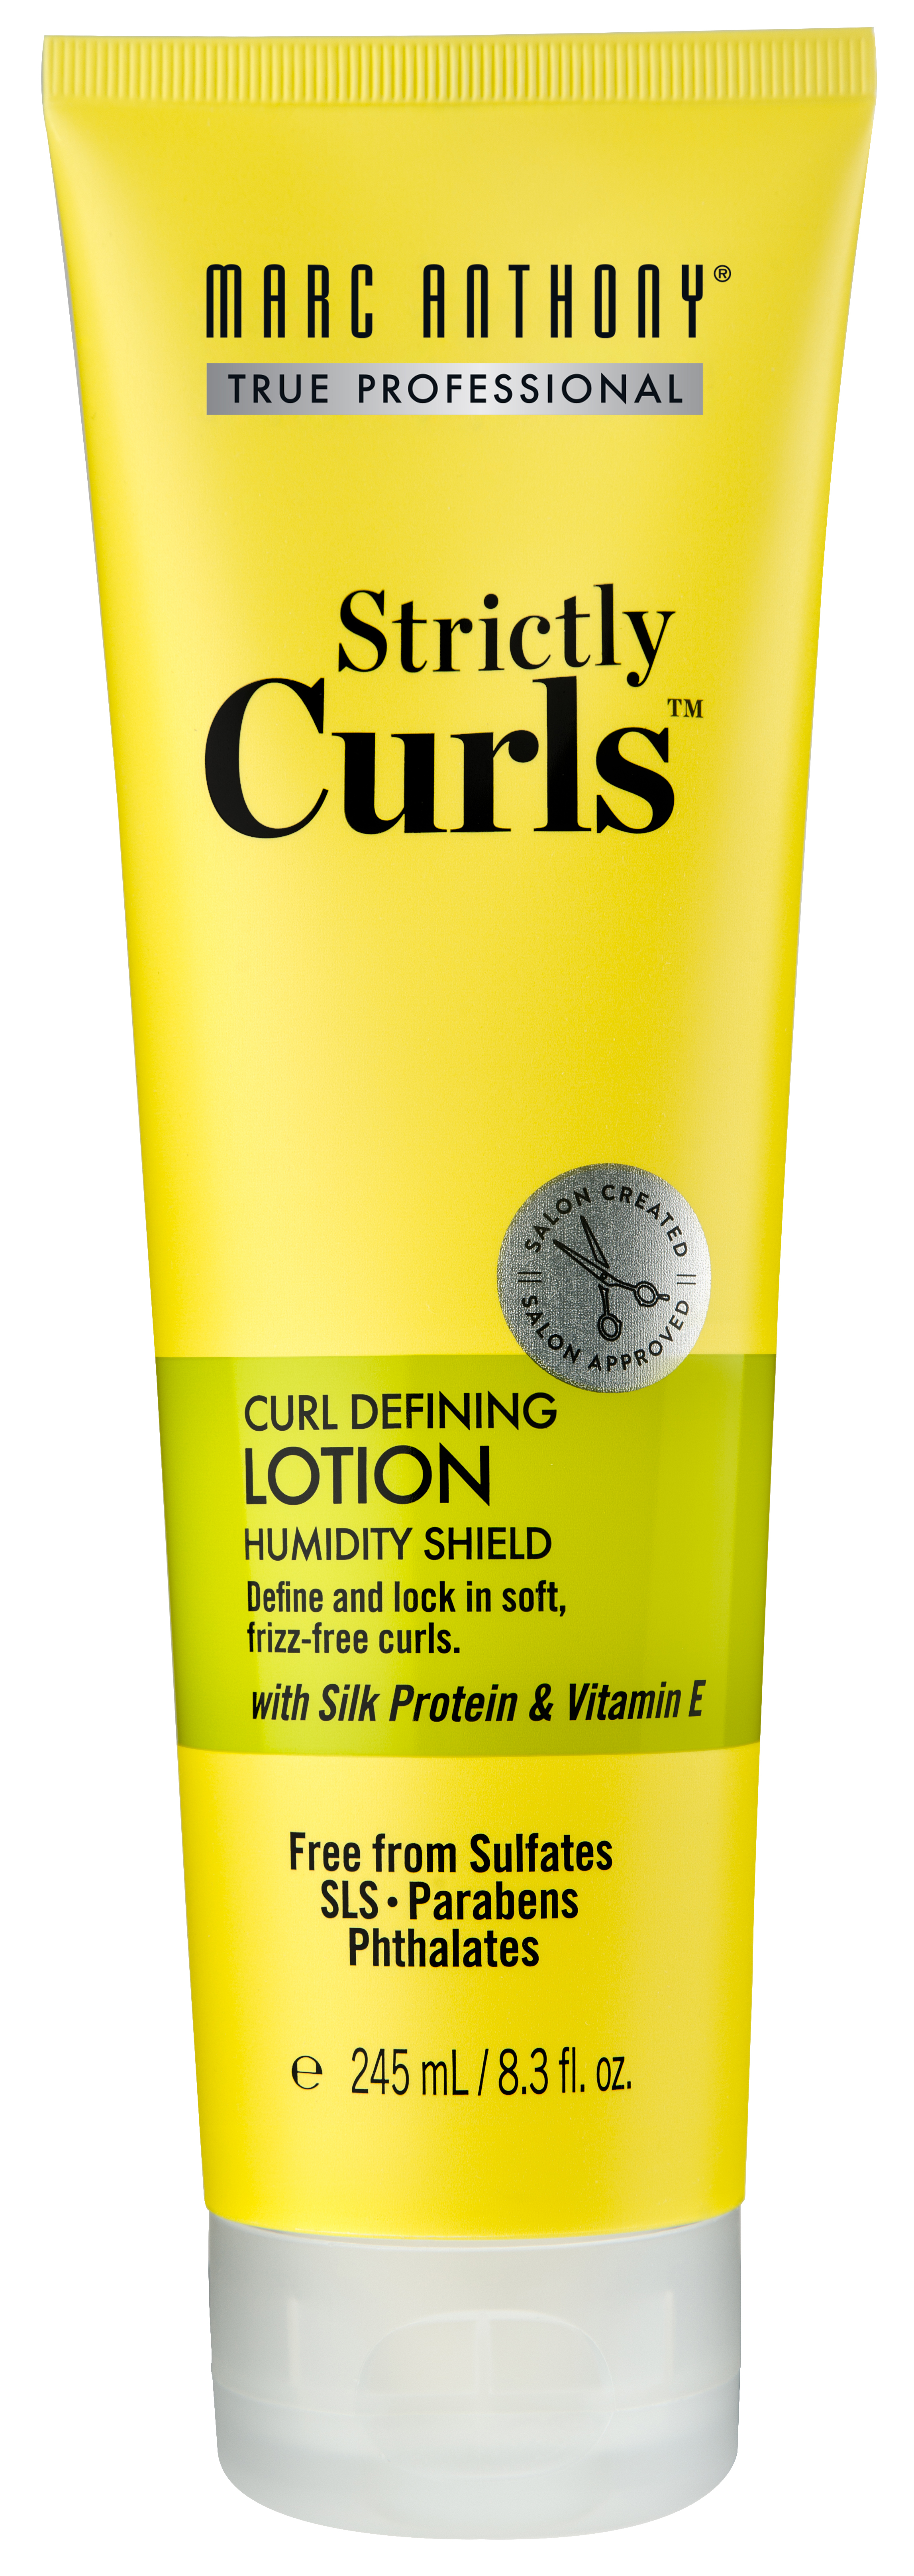 Strictly Curls Defining Lotion 245 ml